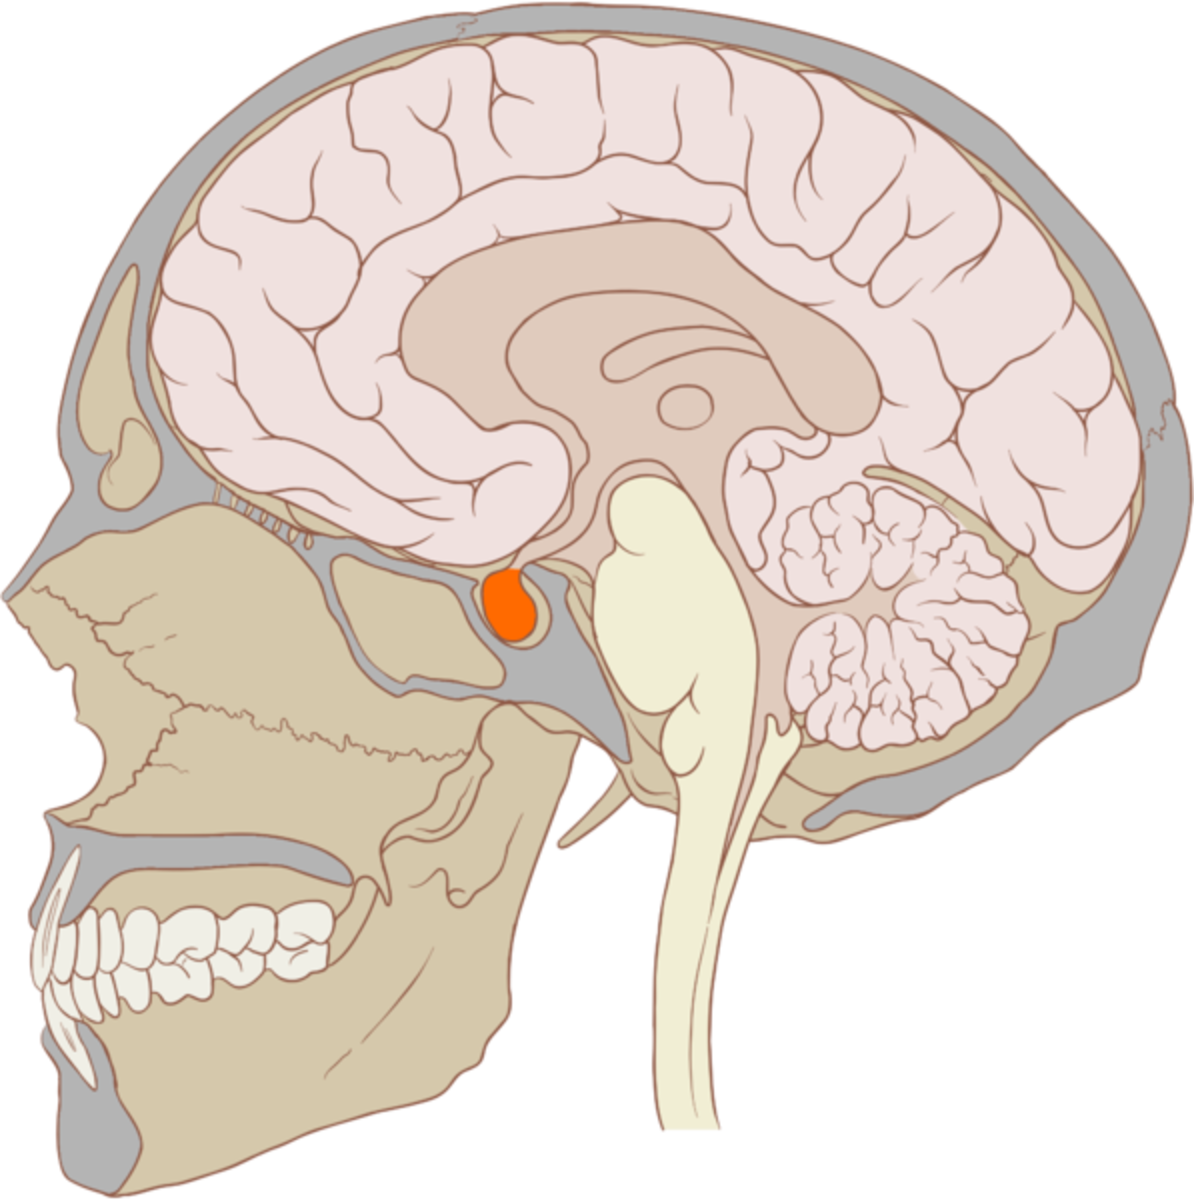 The pituitary gland (colored red) in the brain produces a small amount of ghrelin.